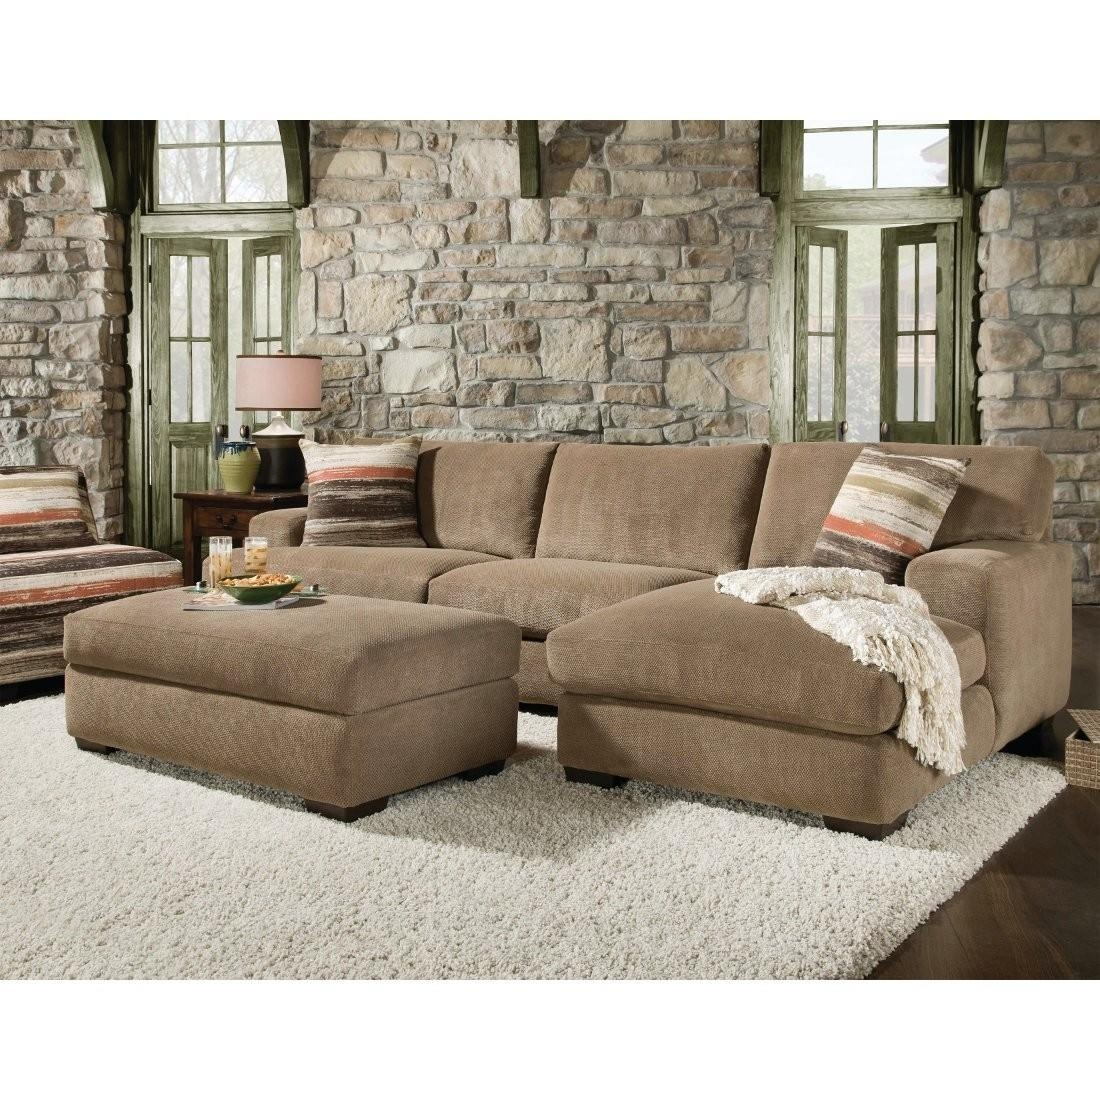 Sofas Center : Down Filled Sofa Kreiss Sectional Sofadowndown And throughout Down Filled Sofas And Sectionals